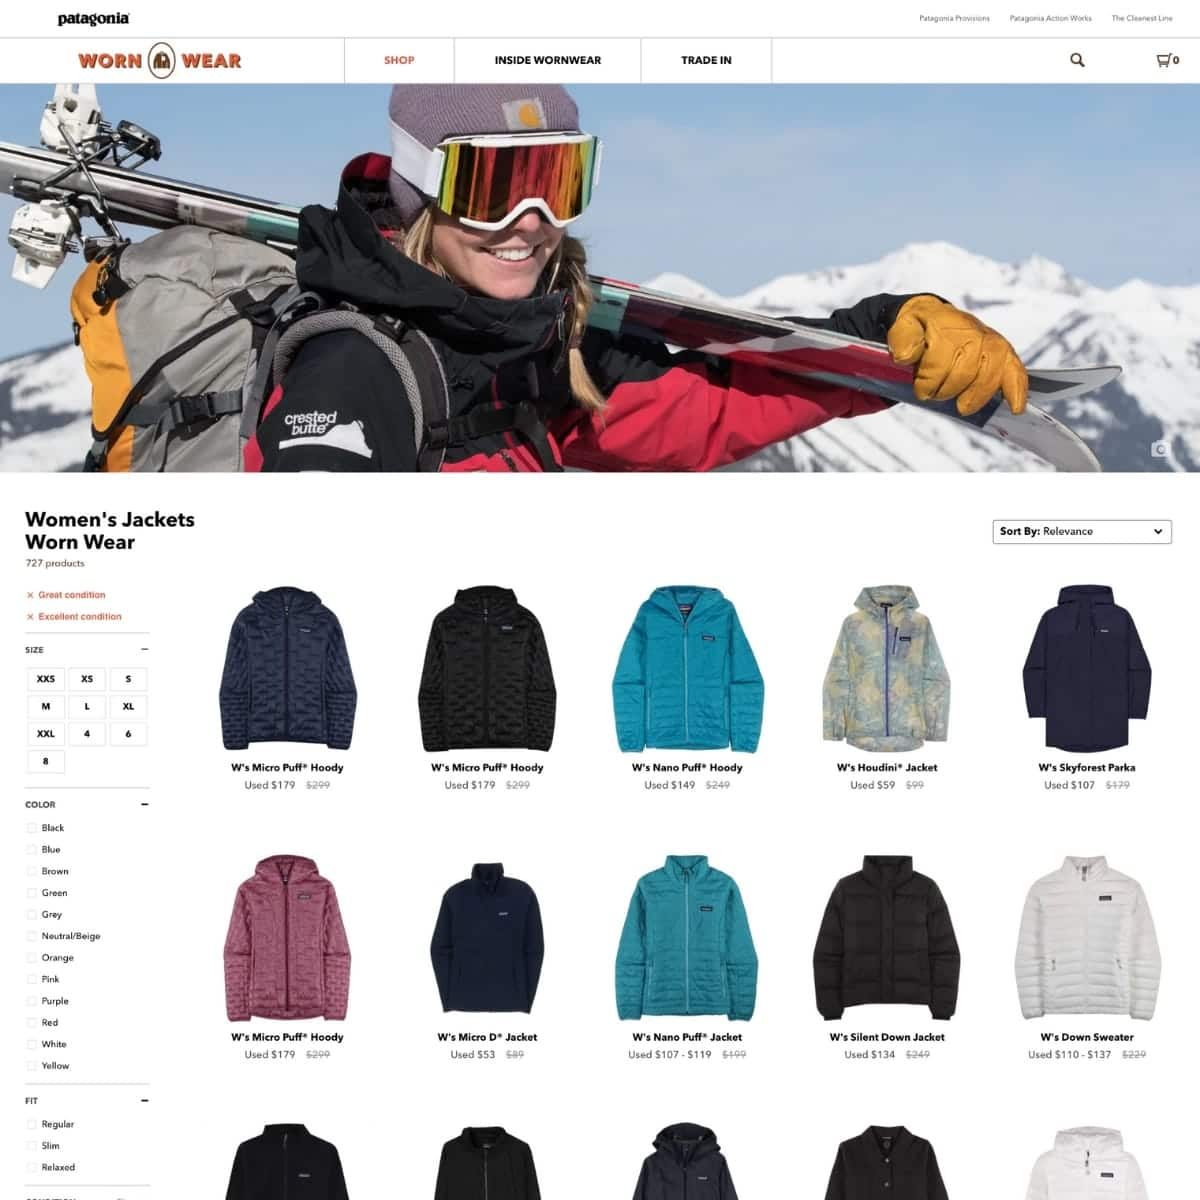 Screen shot of Patagonia worn wear website